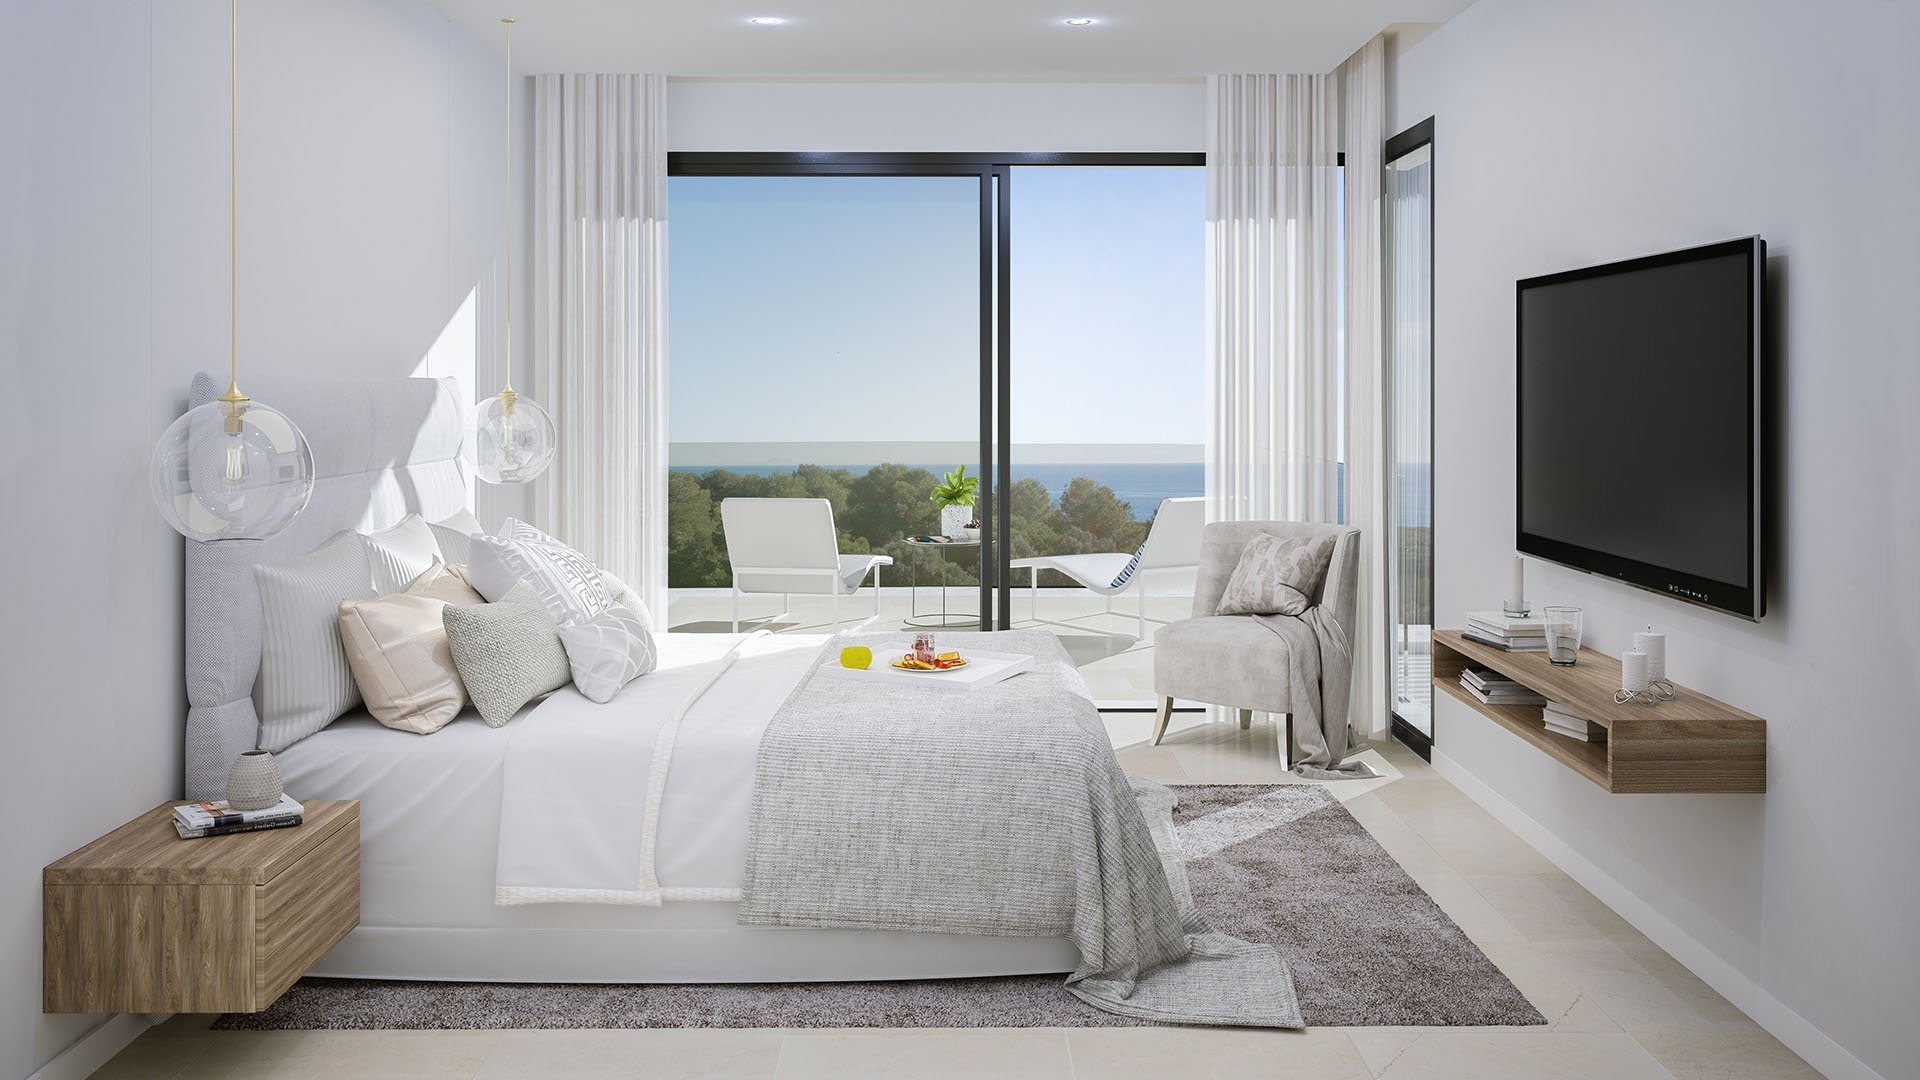 CaboRoyale: Luxury villas with sea views at walking distance from the beach